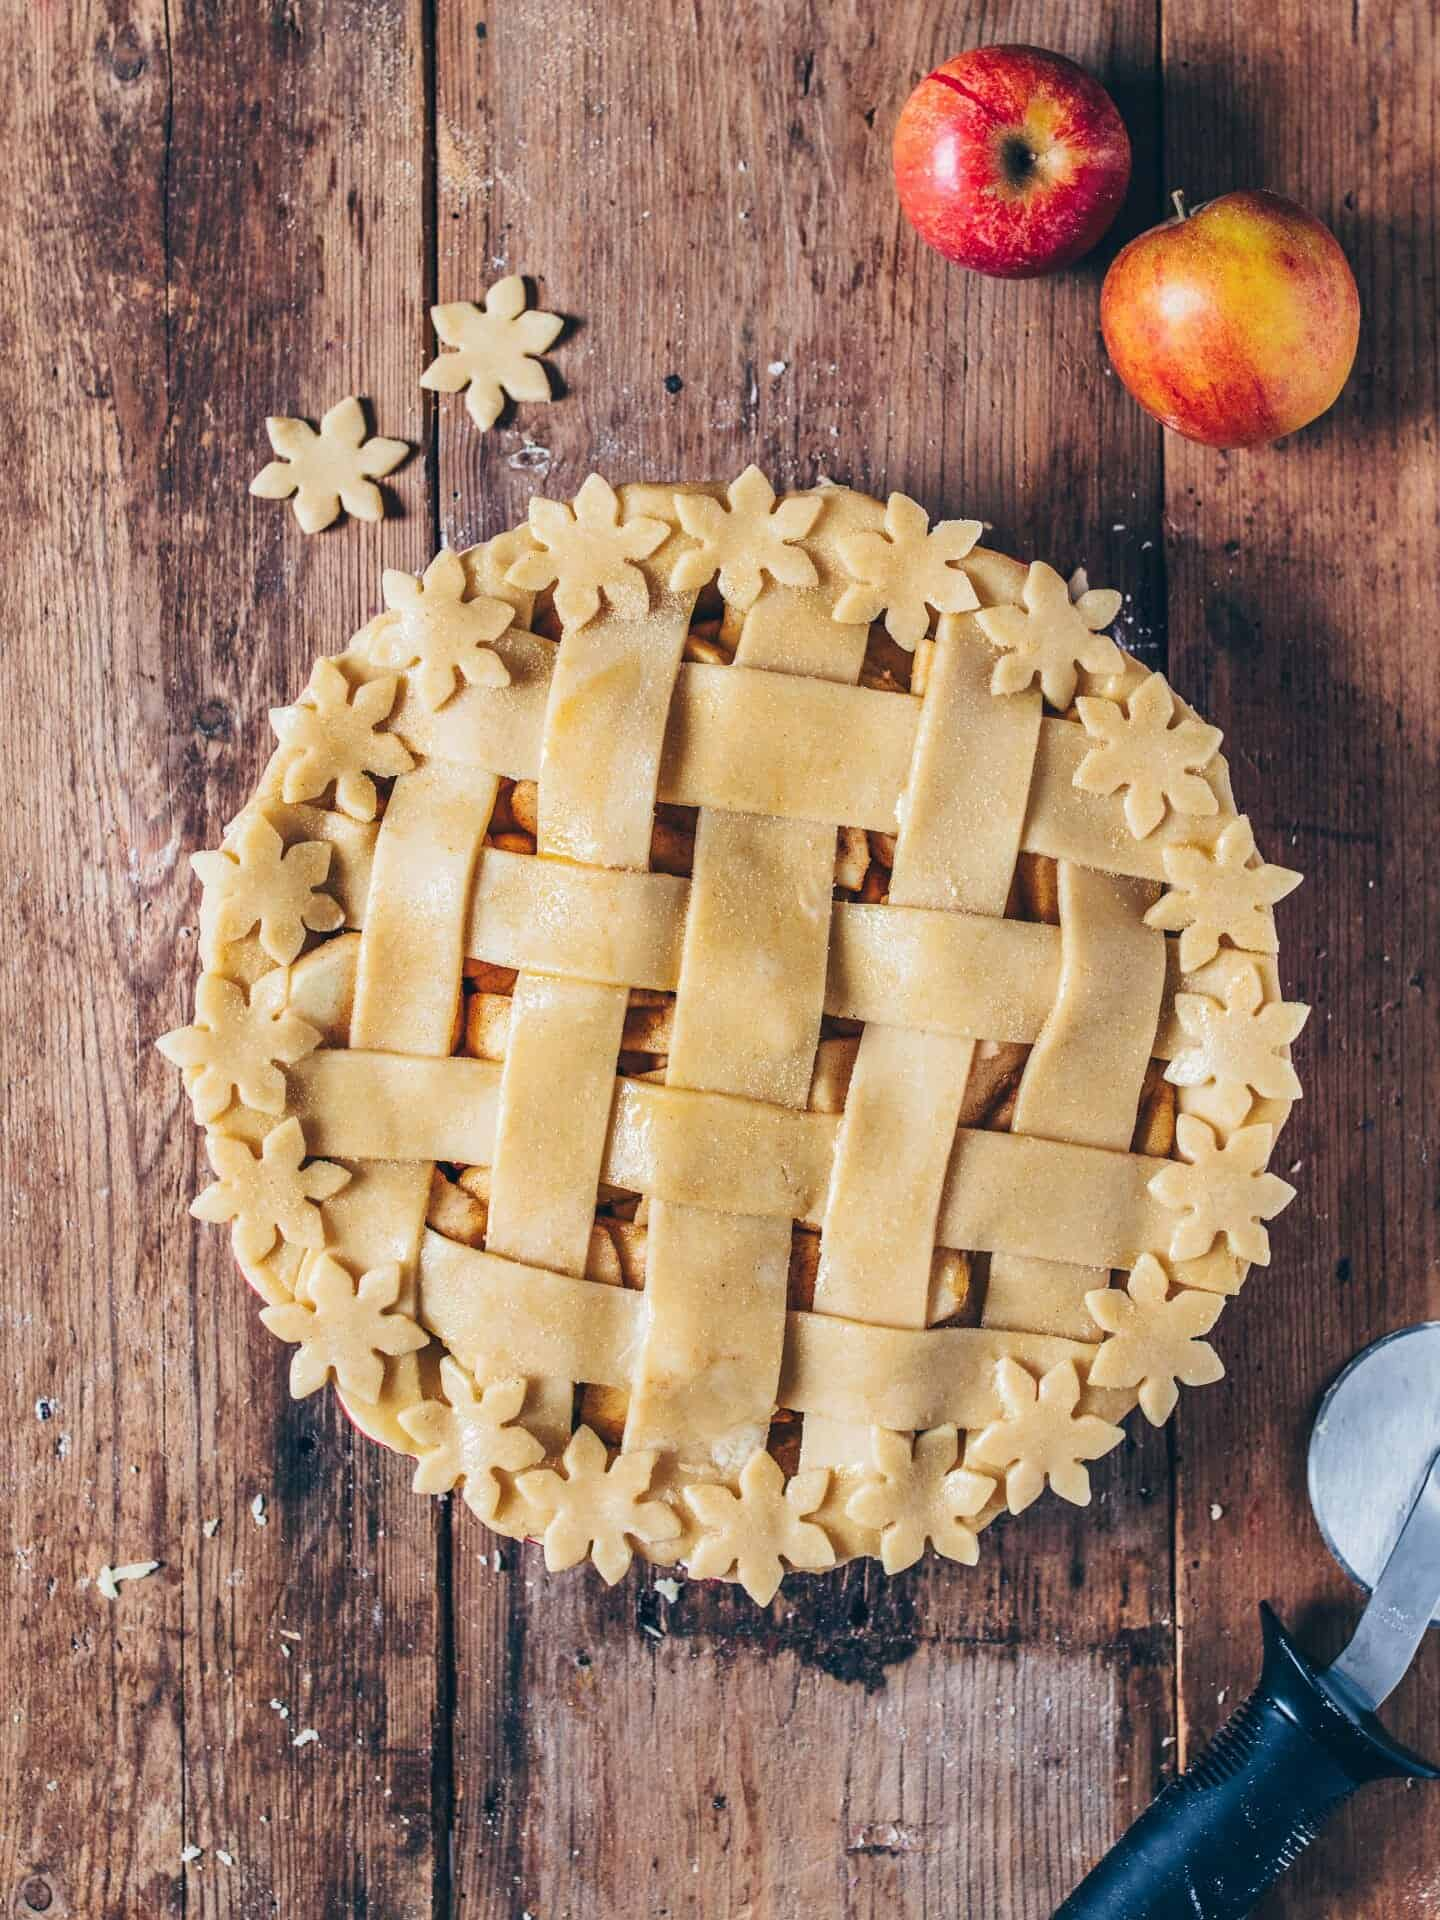 This simple vegan Apple Pie is the perfect dessert with the best Apple pie flavor! The recipe is very easy and can be made gluten-free and sugar-free. A delicious treat for Christmas, Thanksgiving and just everyday!